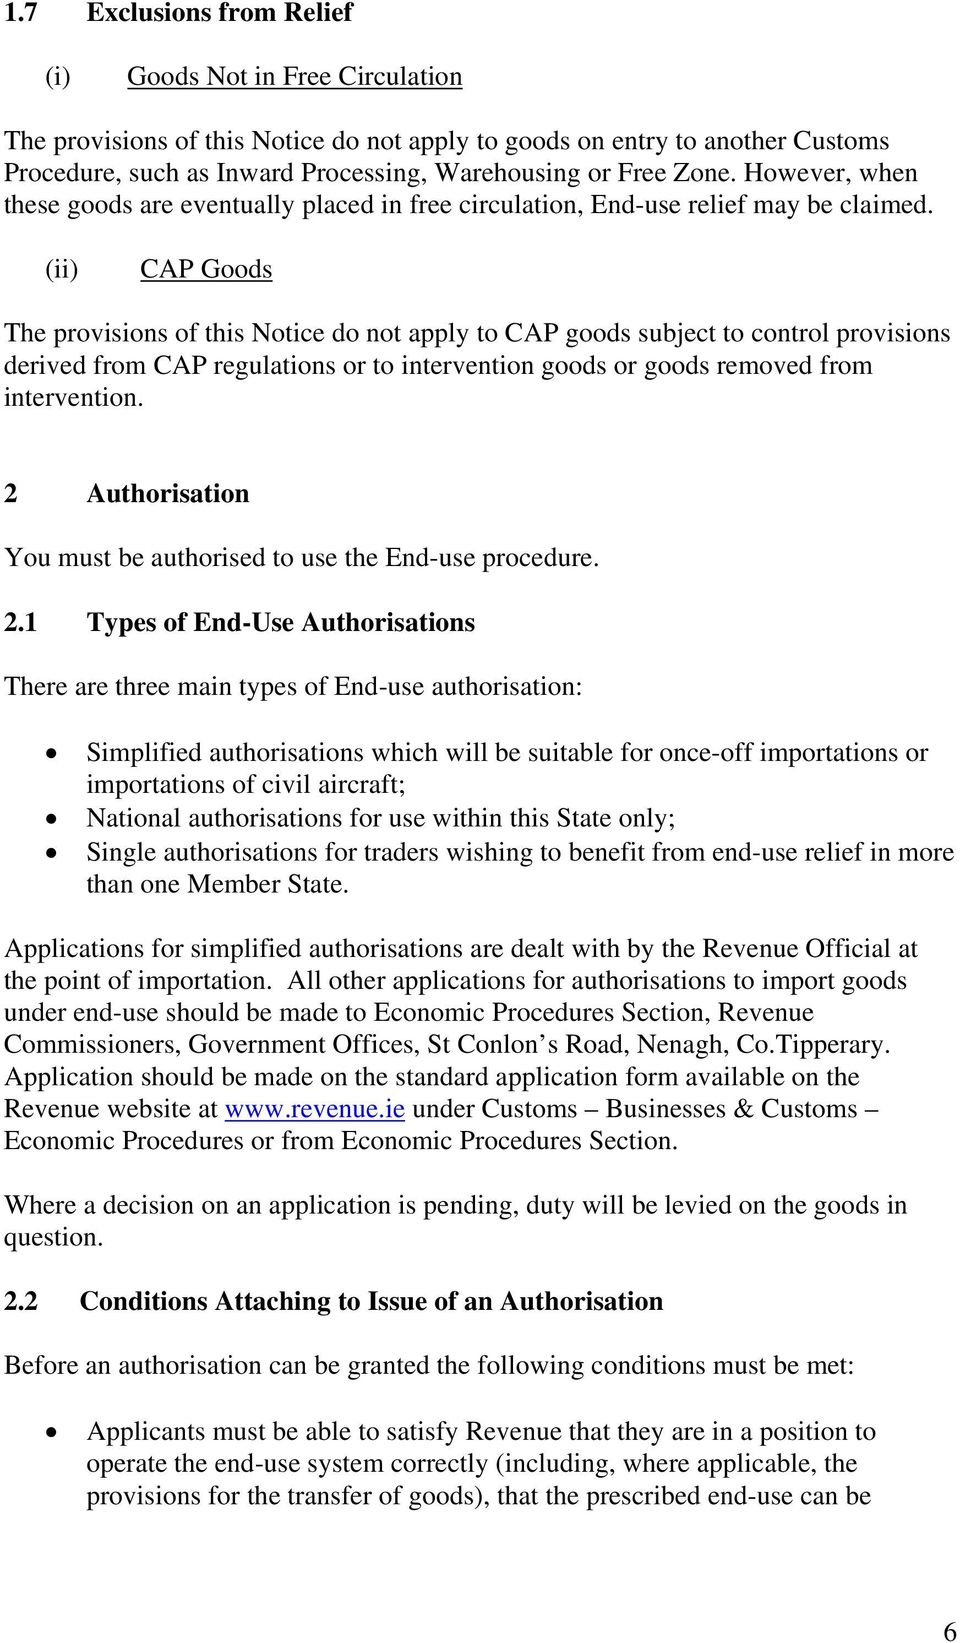 (ii) CAP Goods The provisions of this Notice do not apply to CAP goods subject to control provisions derived from CAP regulations or to intervention goods or goods removed from intervention.